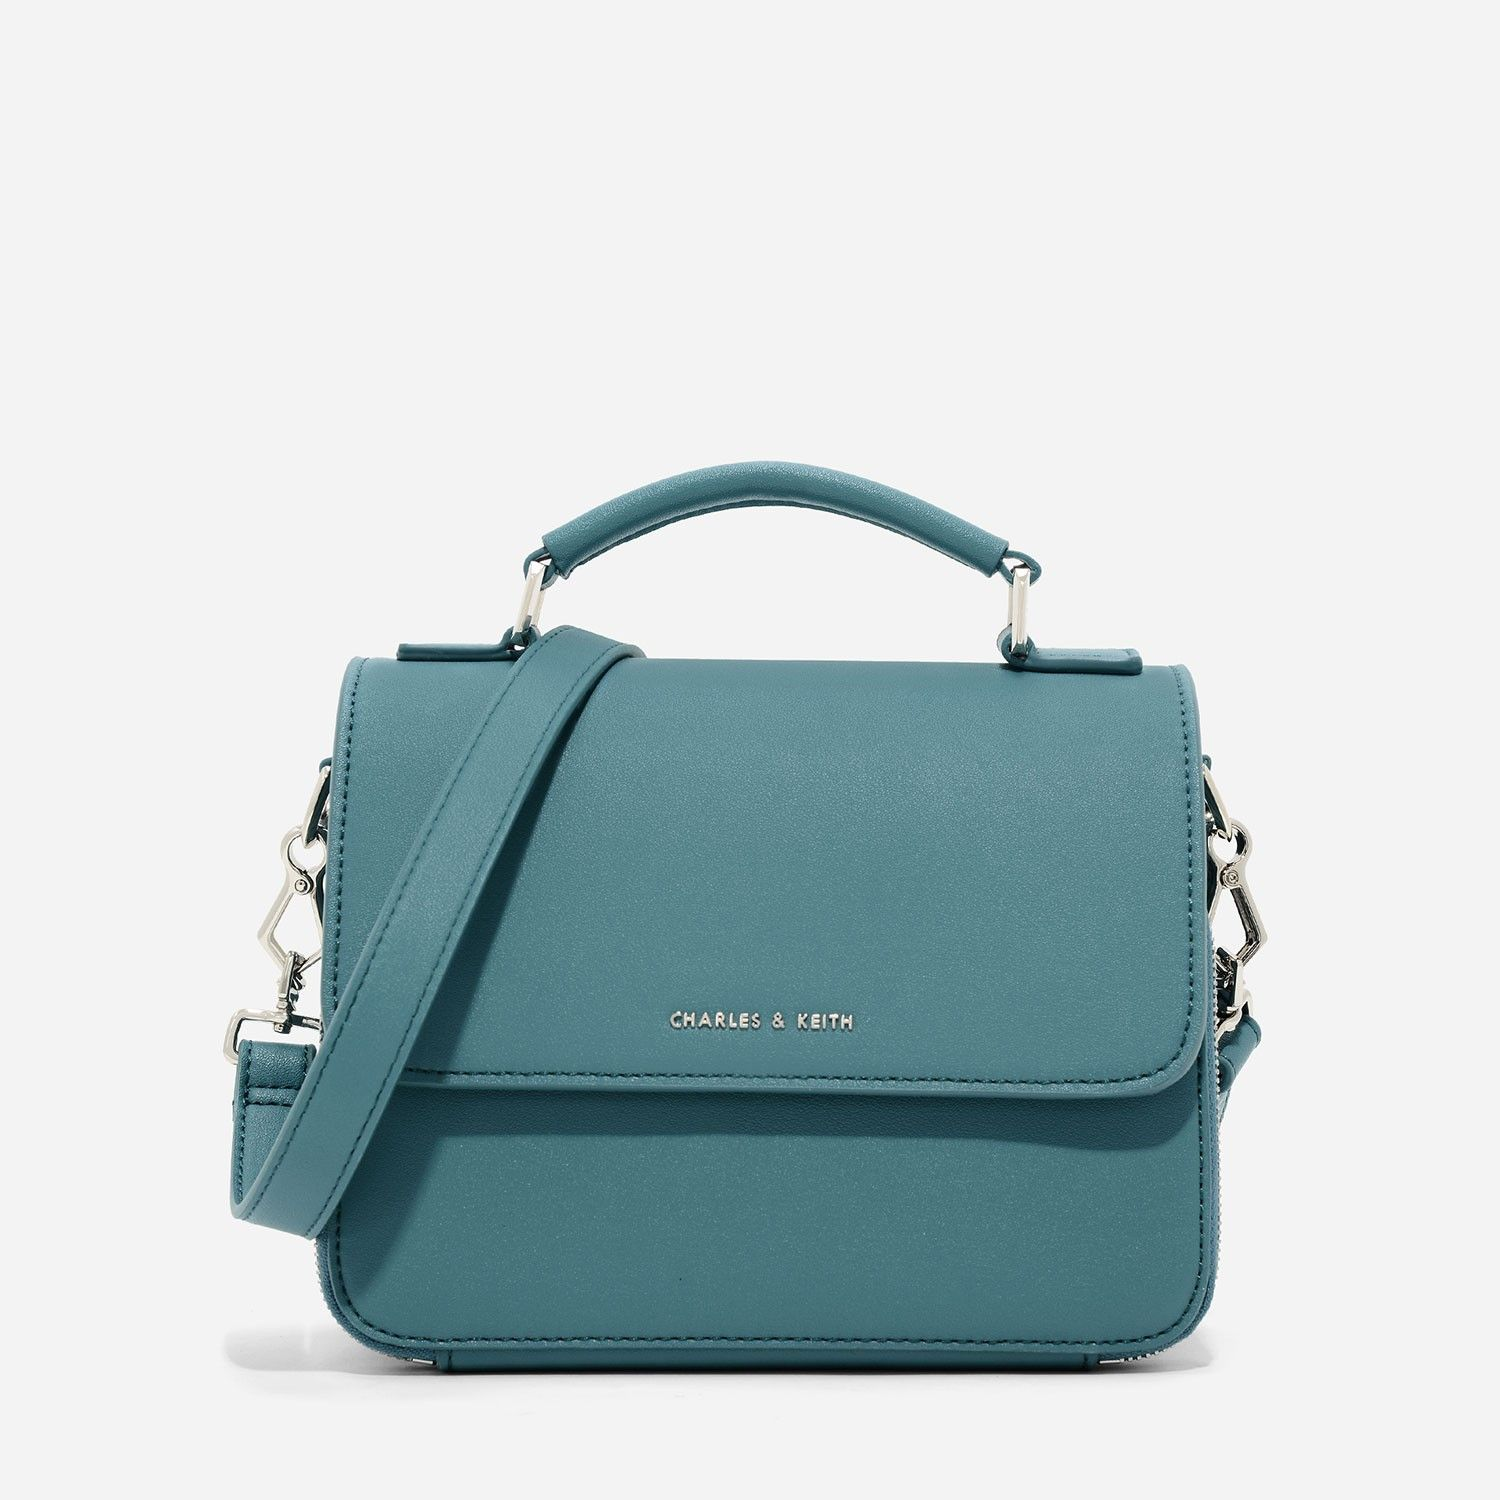 Charles Keith Bags Teal Top Handle Sling Bag Featuring Front Flap And Magnetic Closure